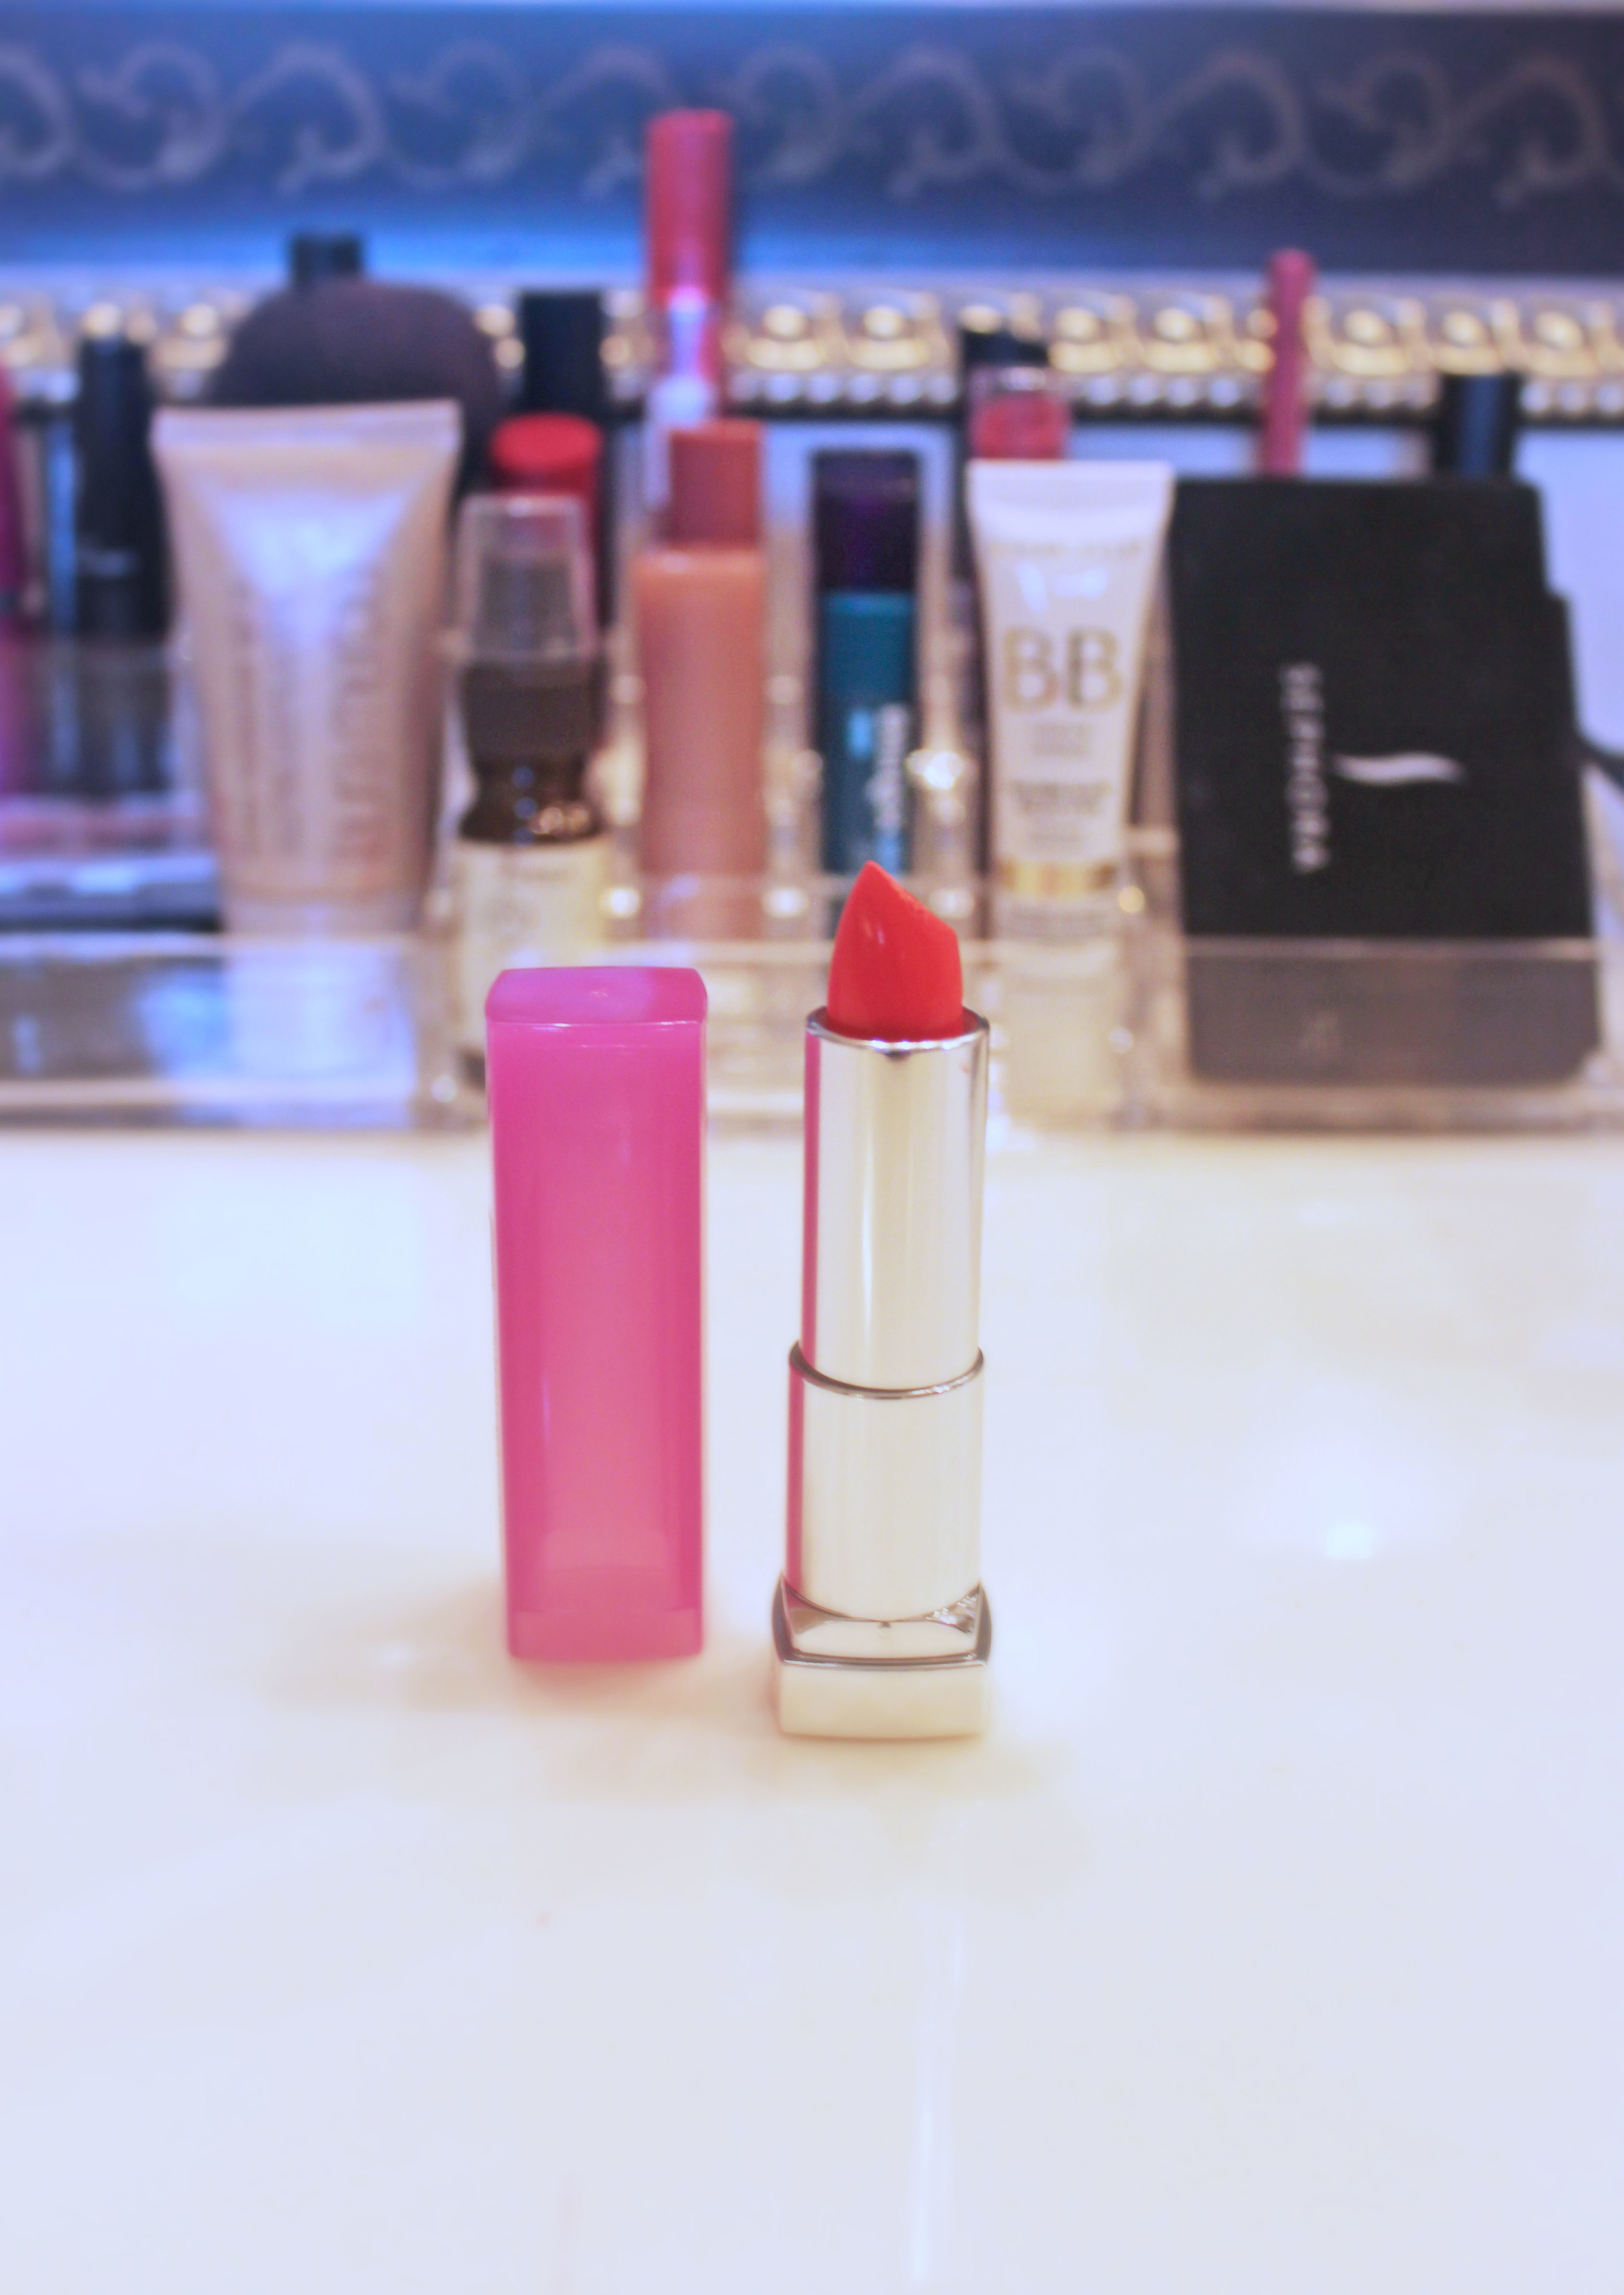 """best summer coral:   Maybelline Color Sensational Rebel Bloom in """"Coral Burst""""    It took a really long time for me to get on board with coral lipstick; I used to never feel very comfortable in it. Now it's one of my favorite lipsticks for summer, and I think this Maybelline has just the right amount of punch to it. I also love how smoothly all the Color Sensational lipsticks seem to go on; no liner needed which is nice."""